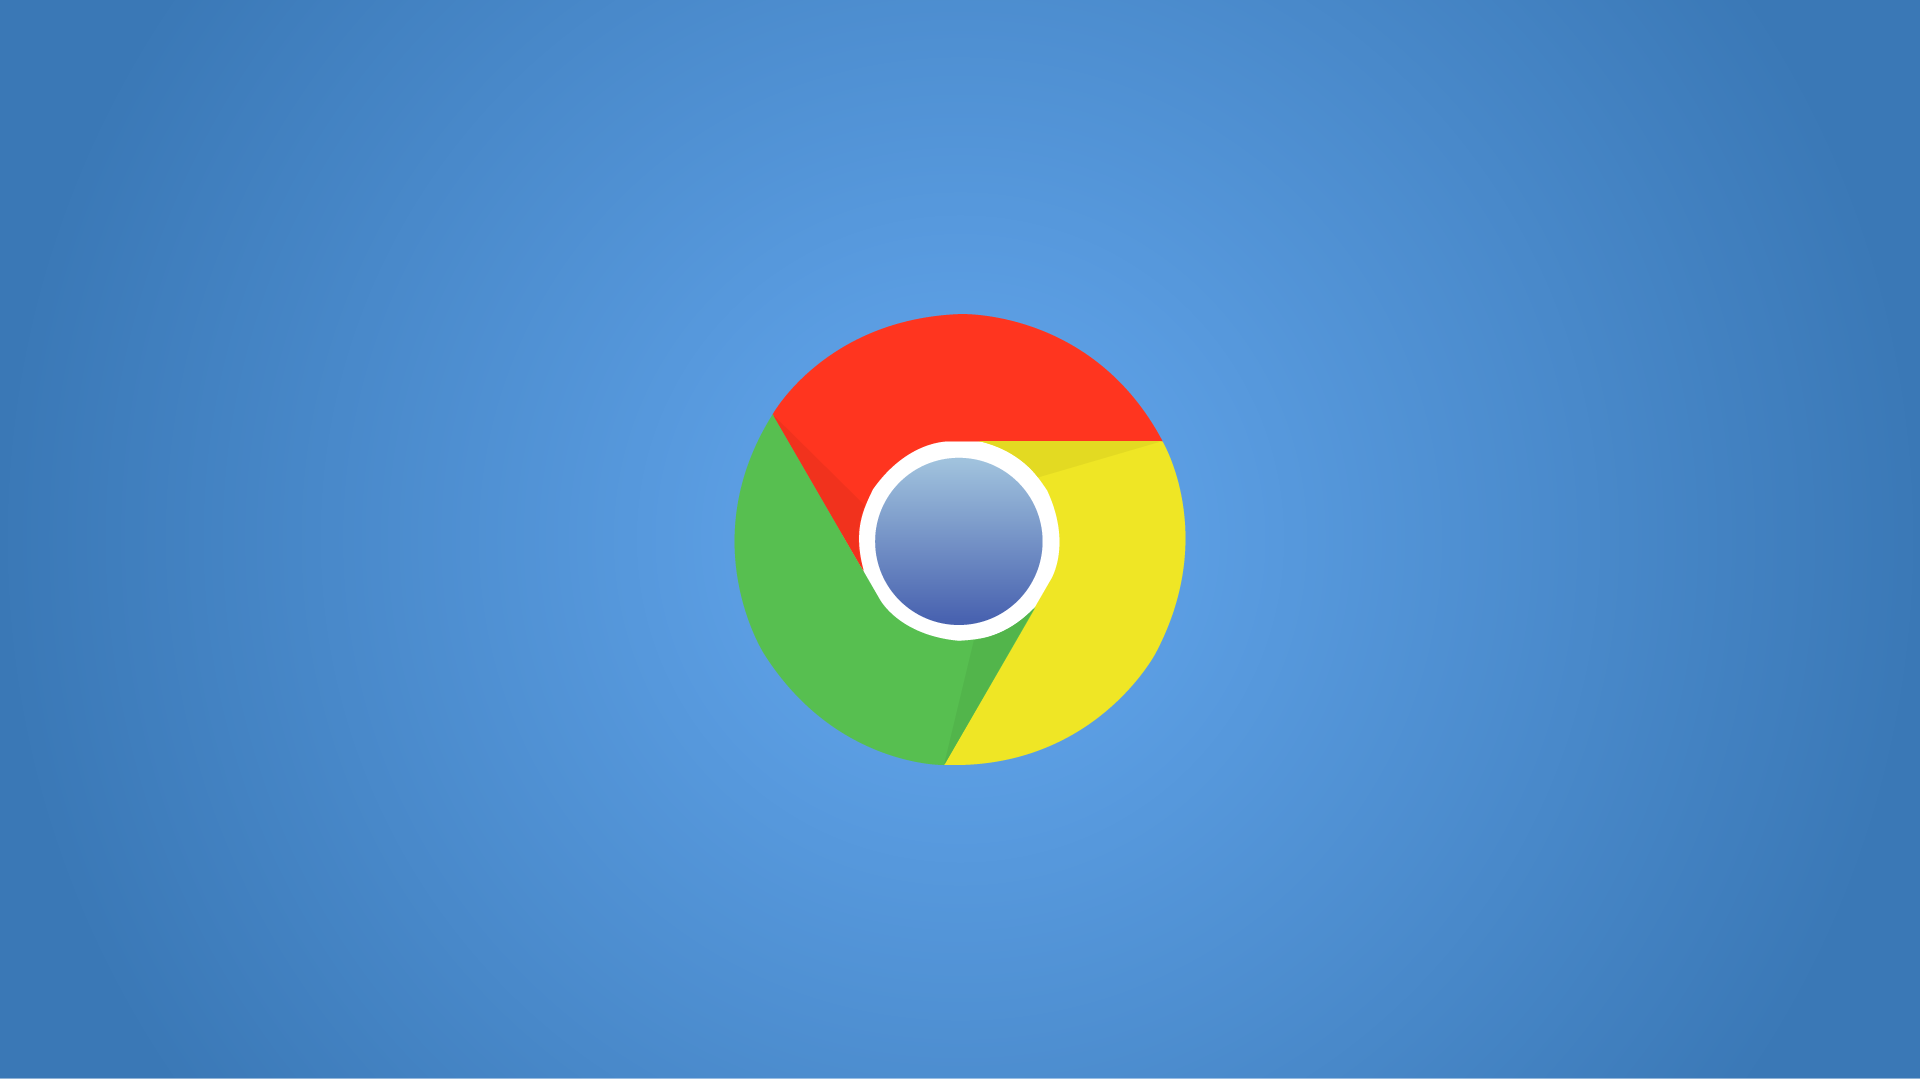 google chrome wallpapers background amazing wallpapers in 2018